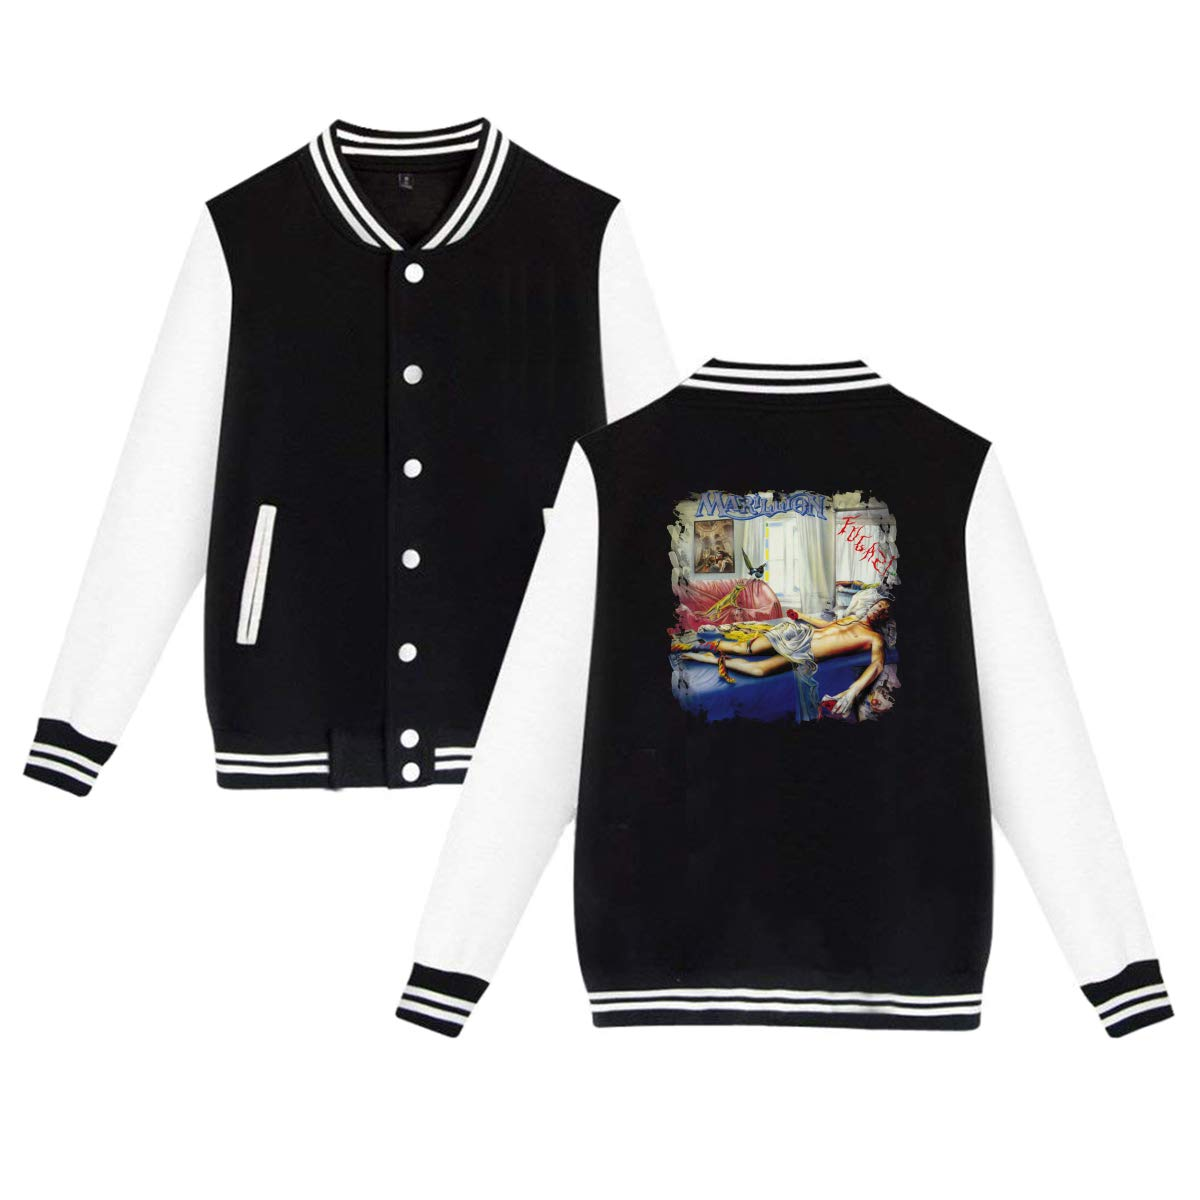 CHASIHAO Marillion Fugazi Men Women Baseball Uniform Jacket Coat Black